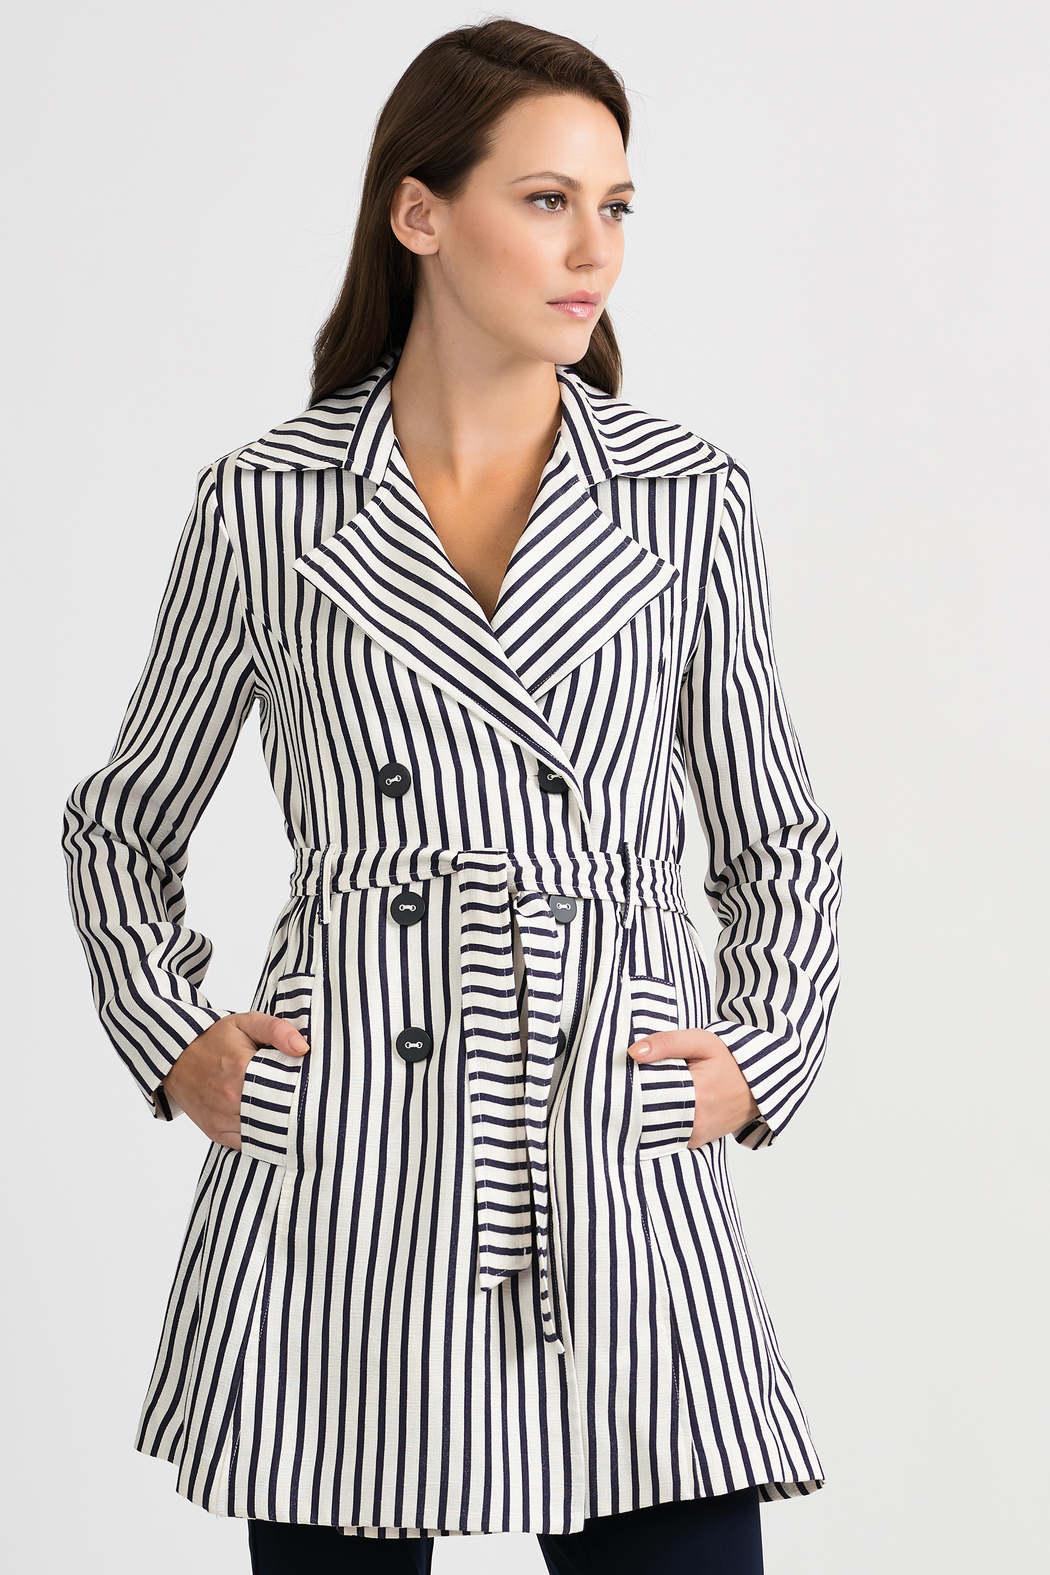 Joseph Ribkoff Classic Striped Tench Jacket, Nave/Offwhite - Main Image